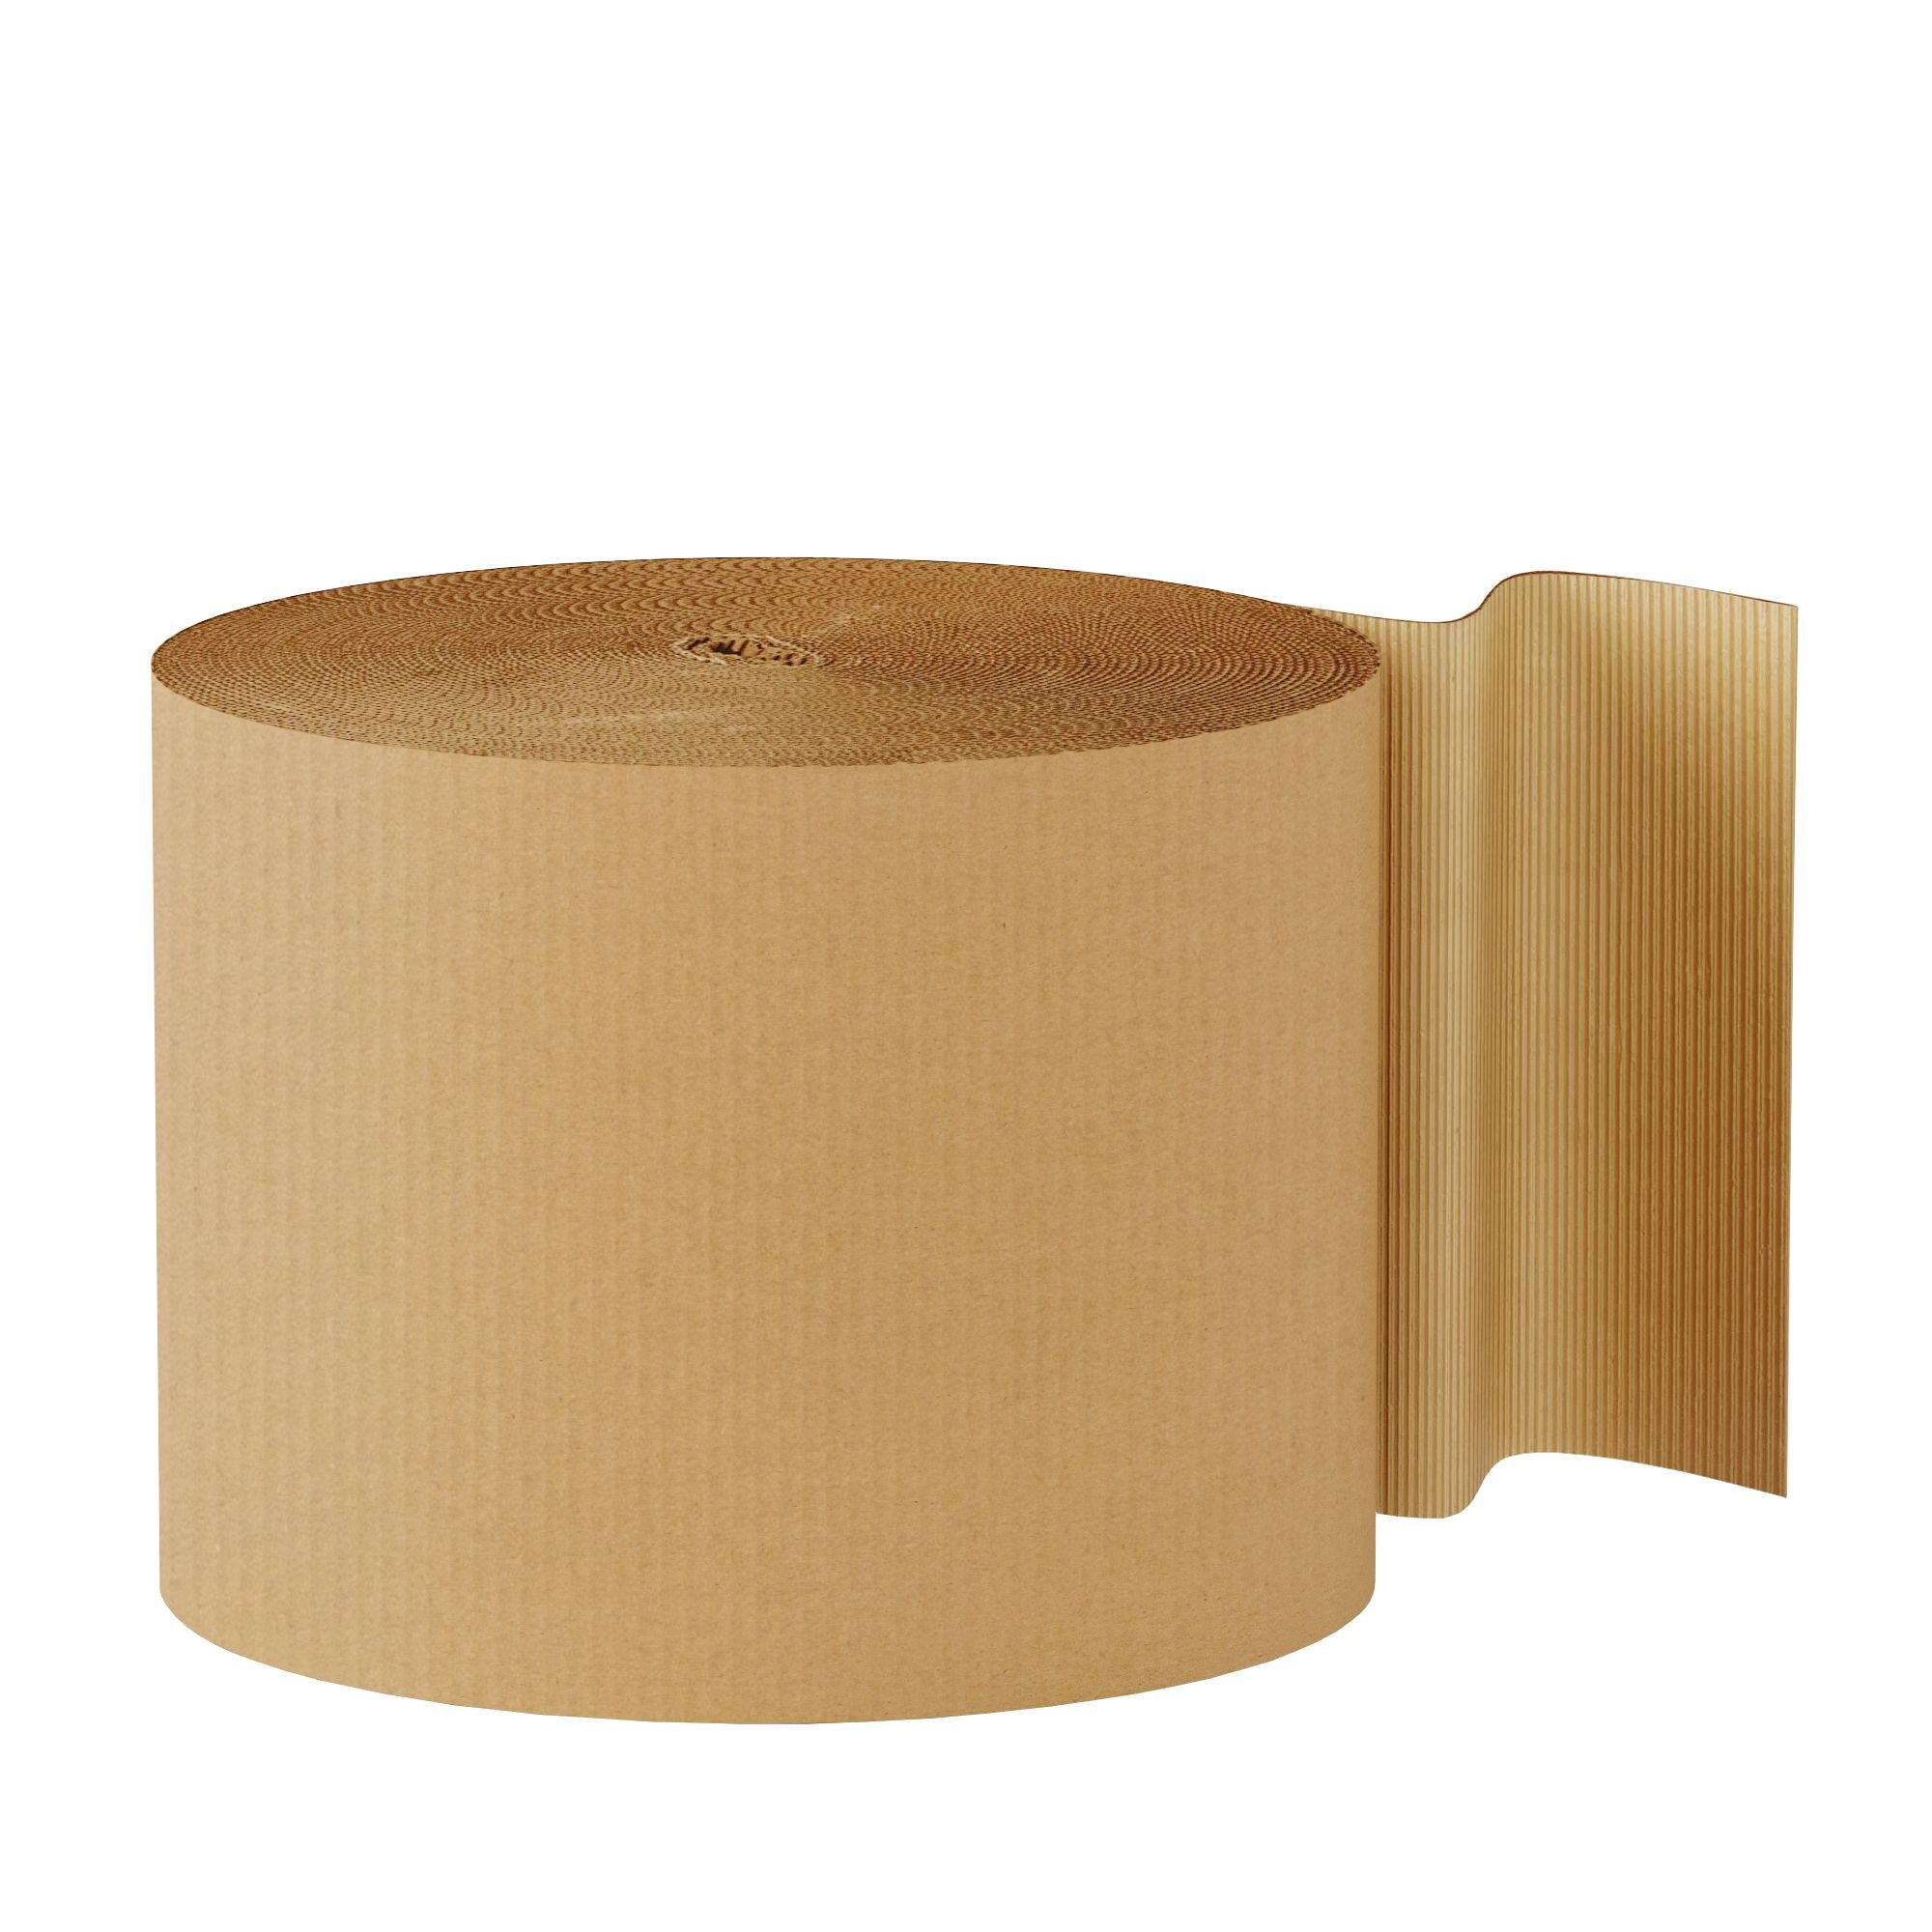 "TOTALPACK® 24"" x 250' - Kraft Singleface Corrugated 1 Roll"